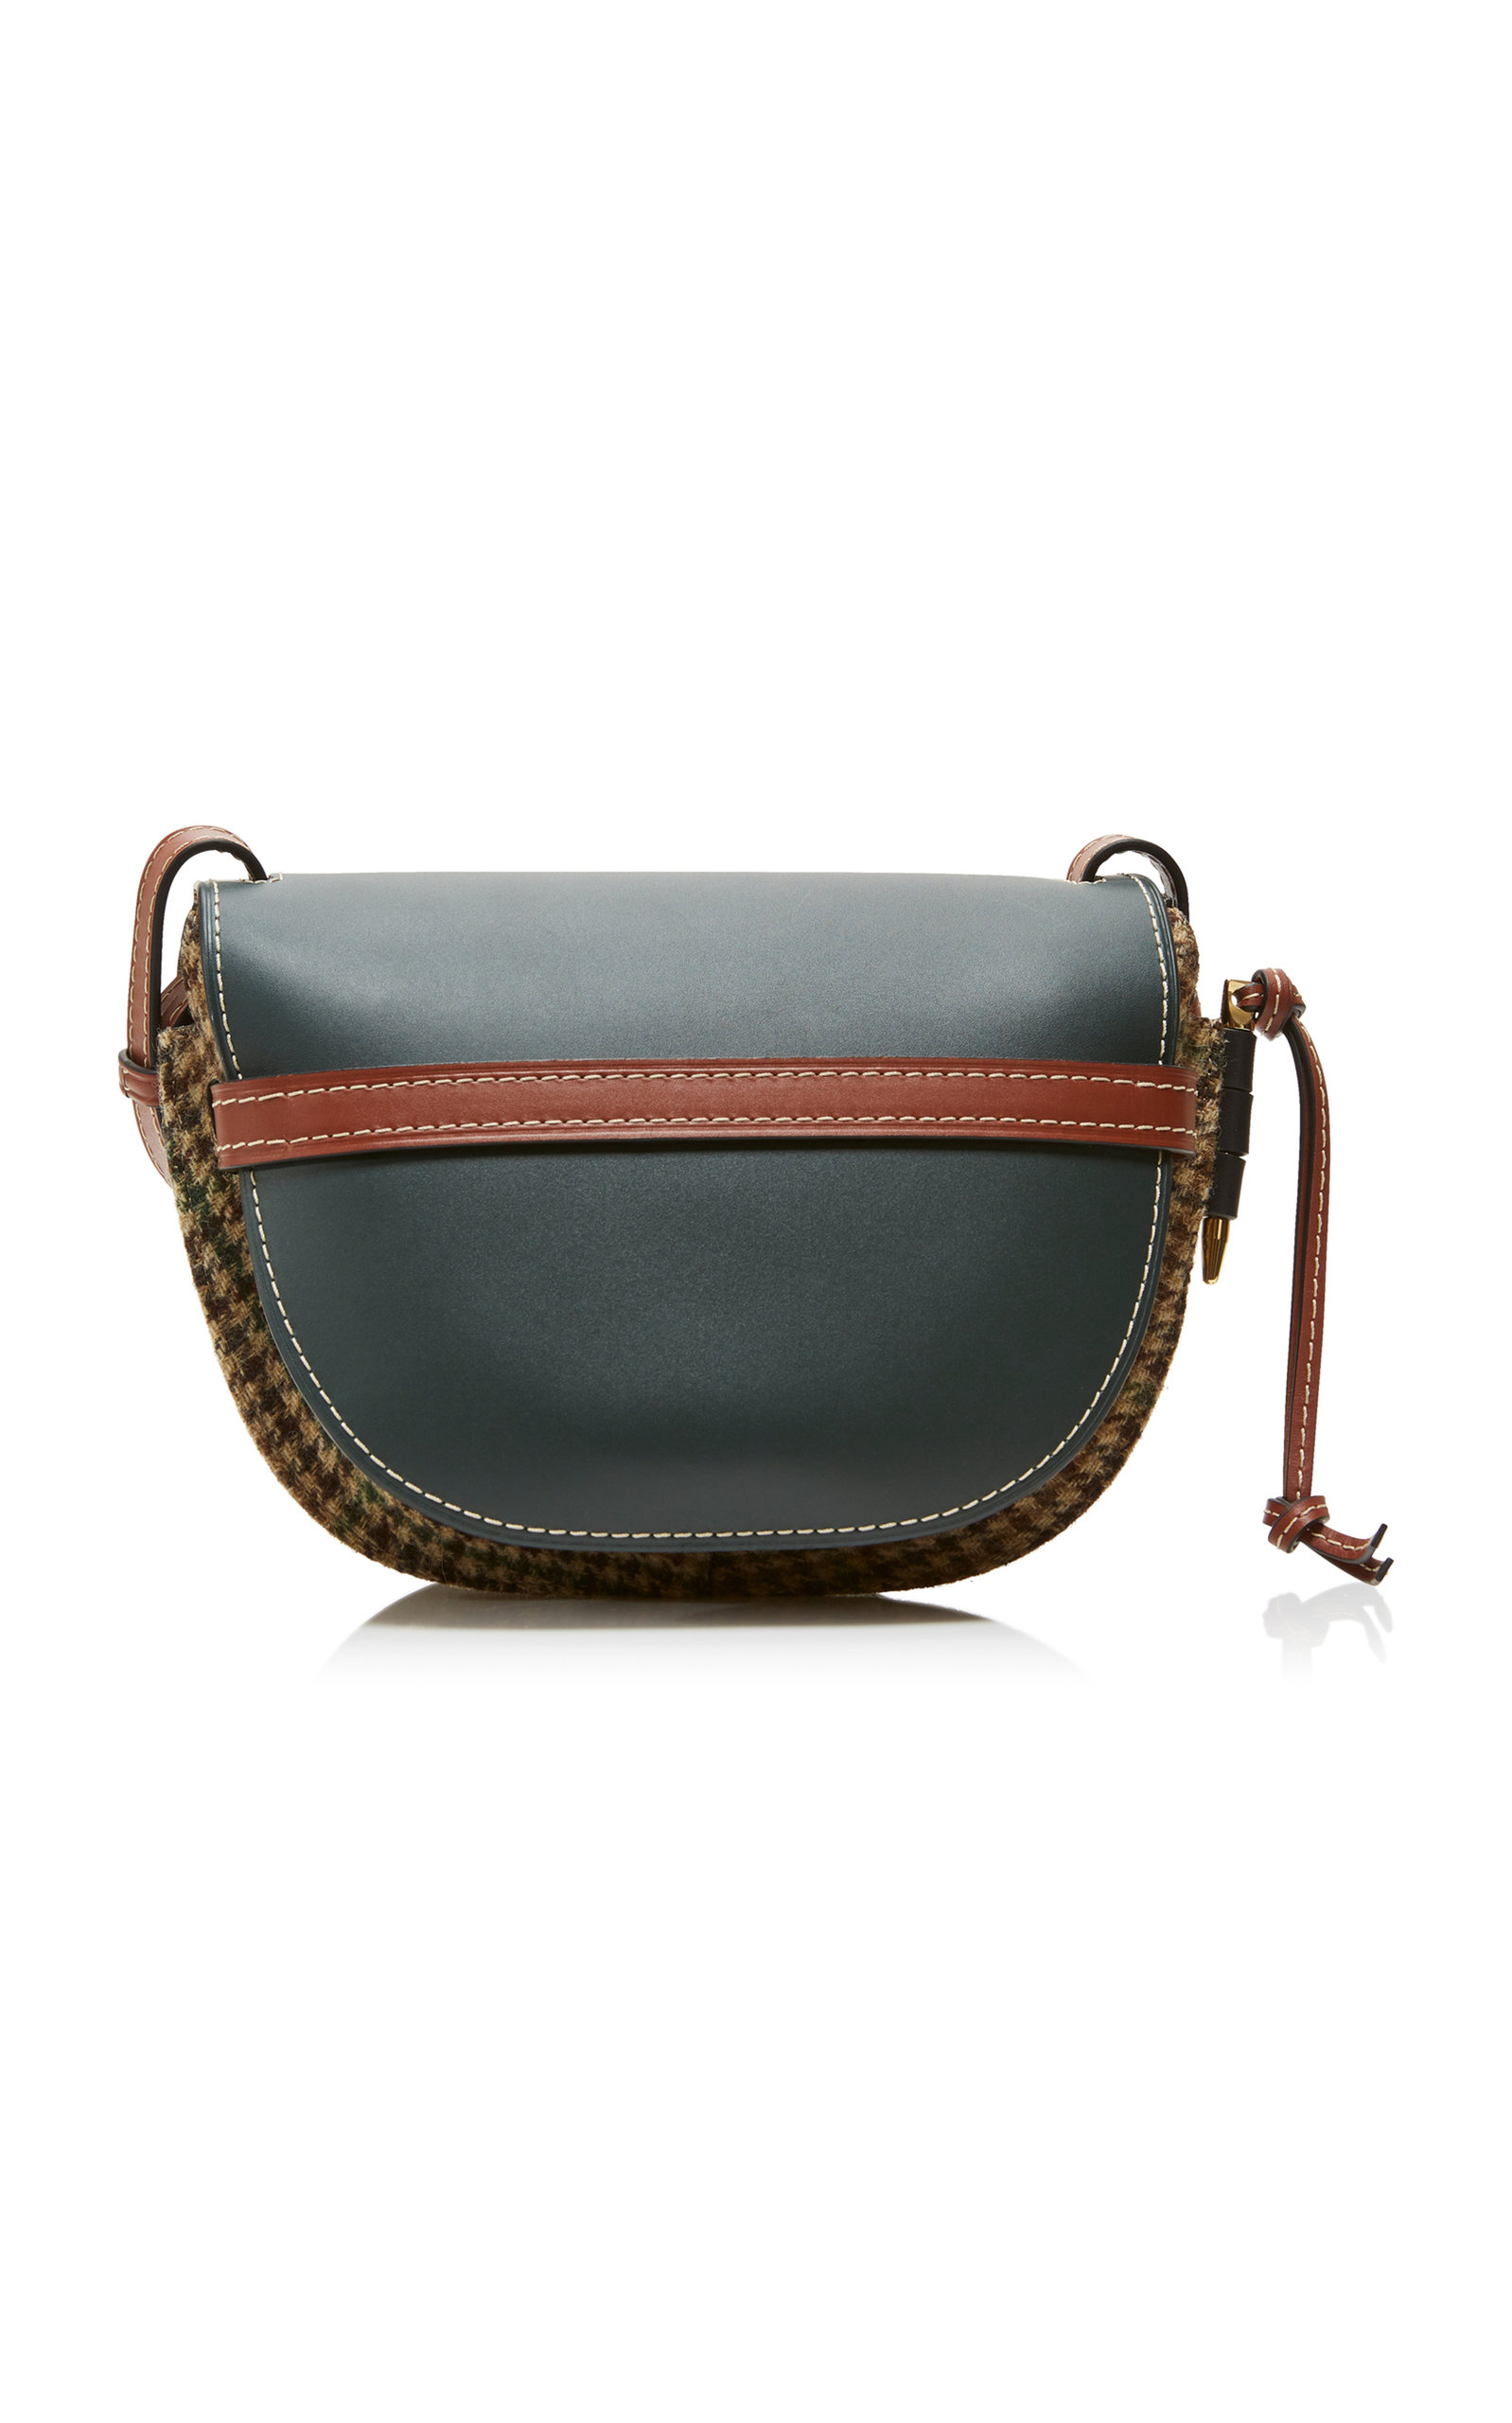 a9b8eb4039c8a Loewe Gate Tweed Small Bag. CLOSE. Loading. Loading. Loading. Loading